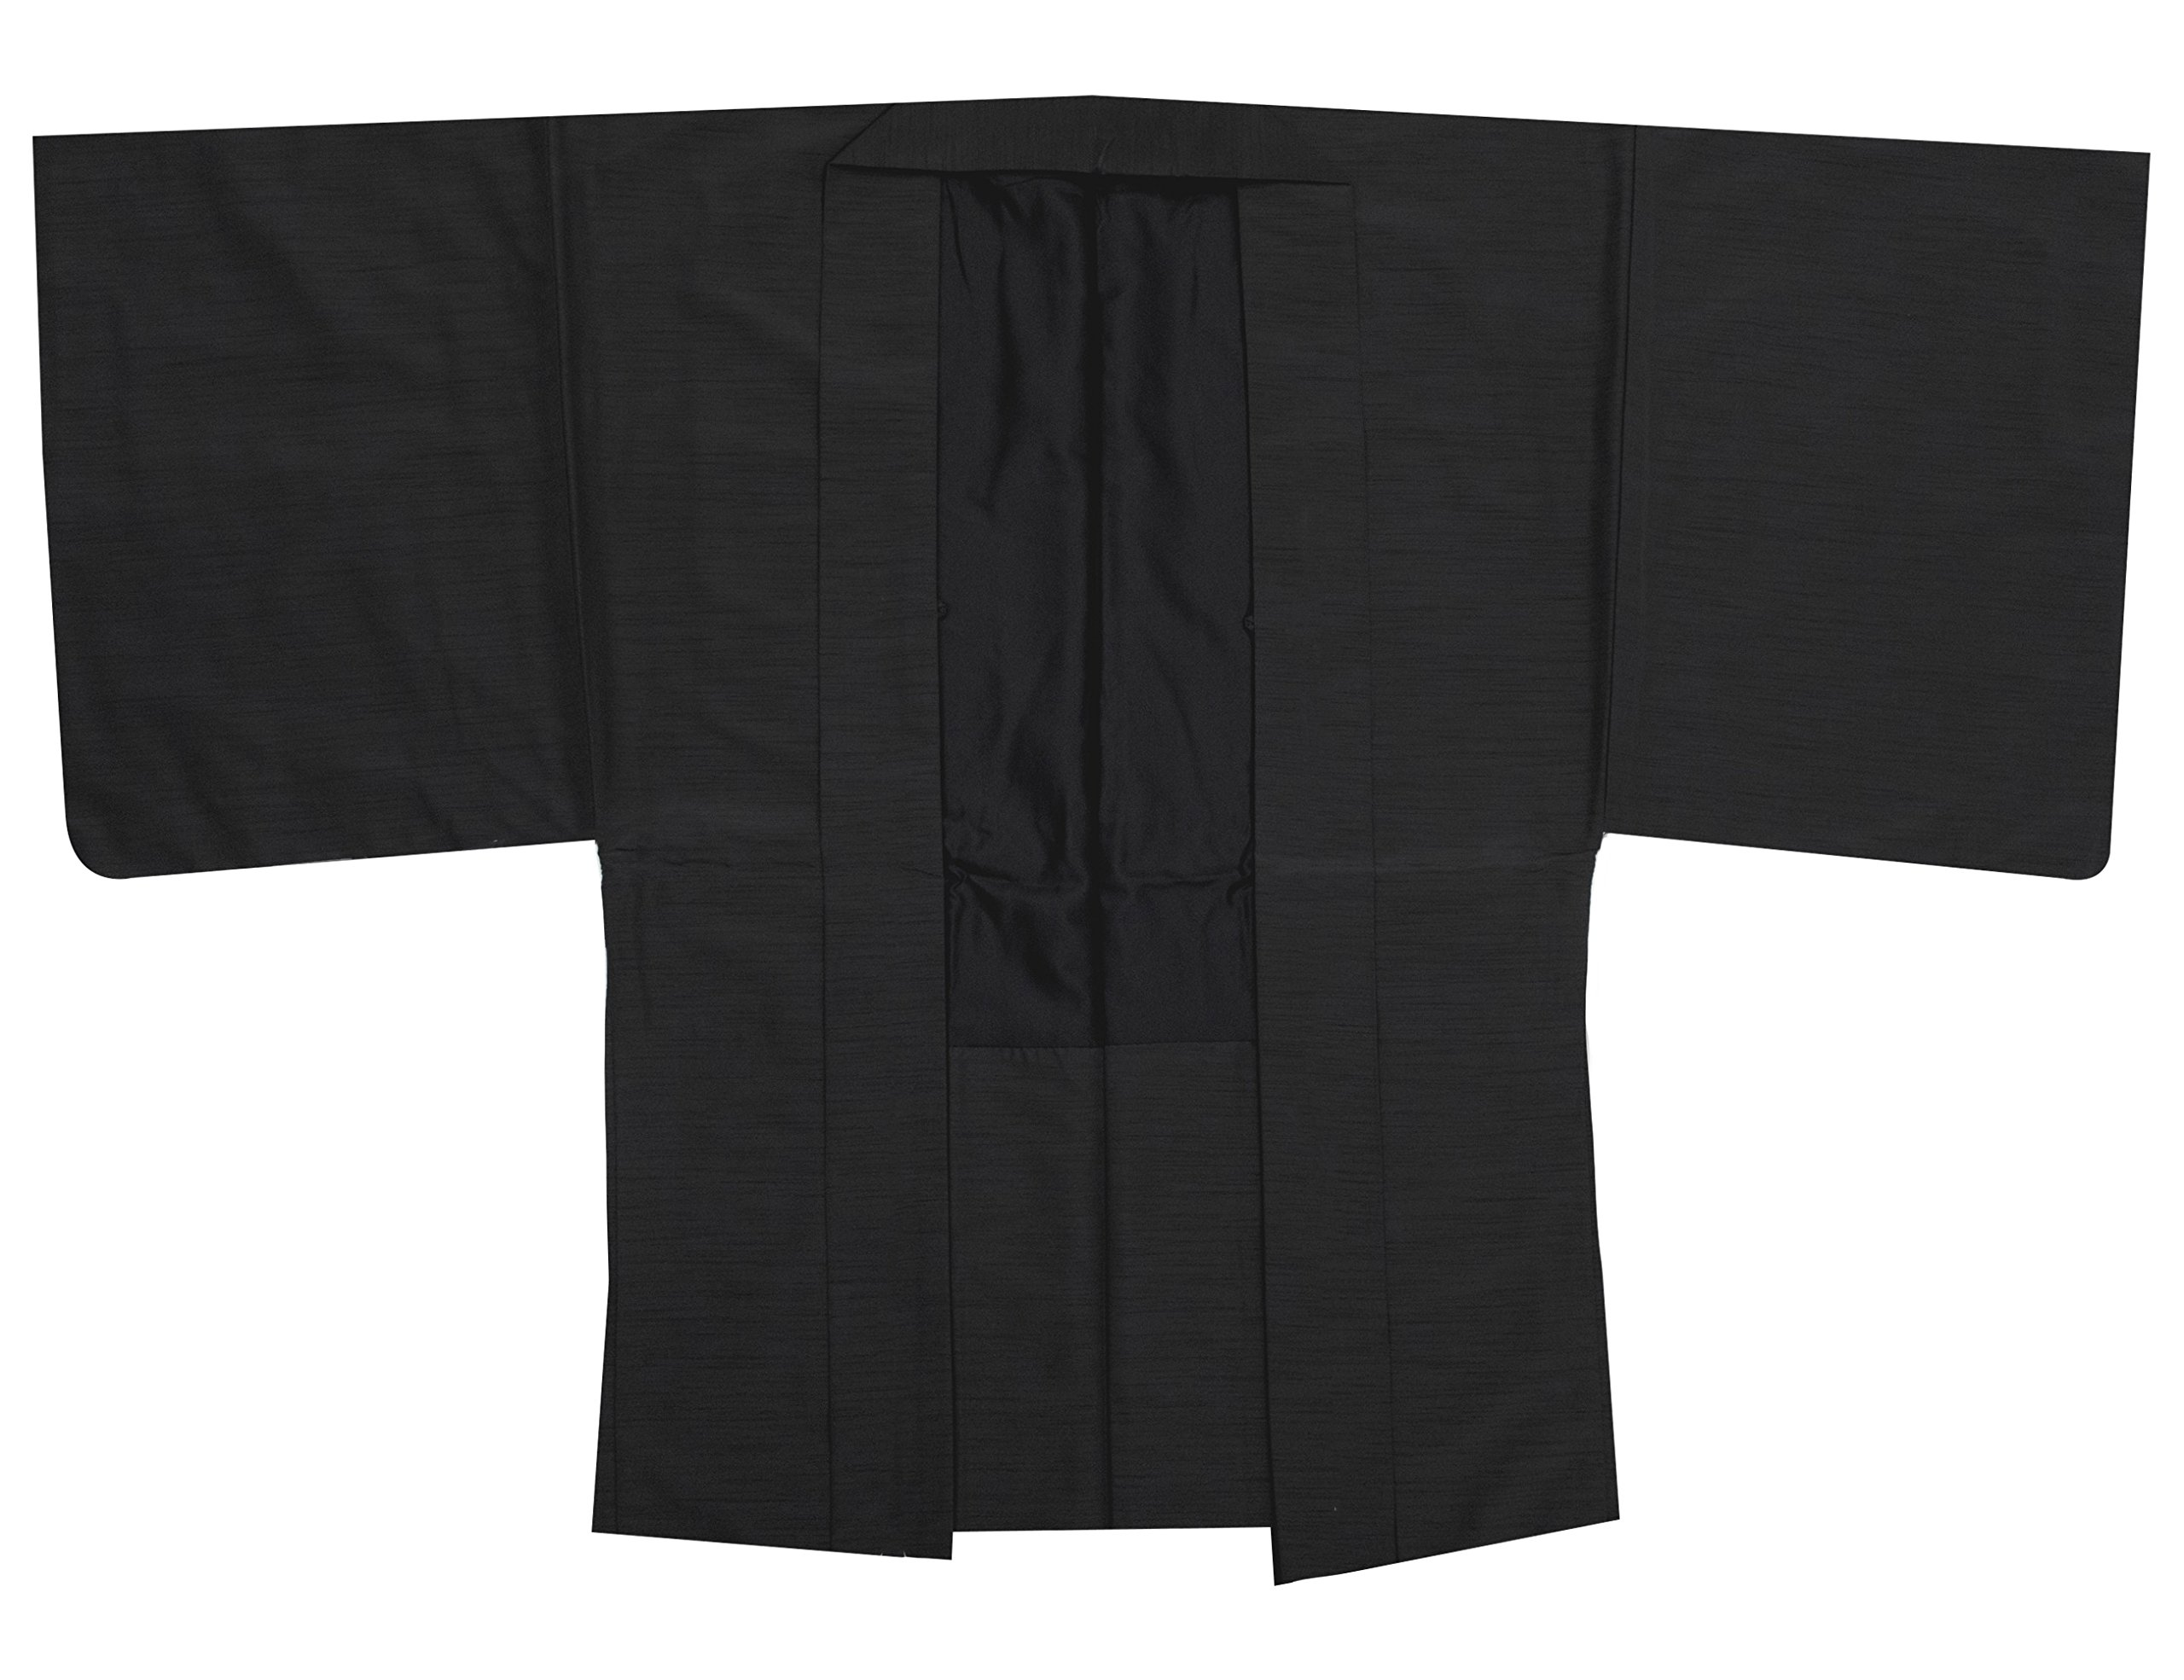 KYOETSU Men's Washable Lined Haori Kimono Jacket Tsumugi Awase (Medium, Black)